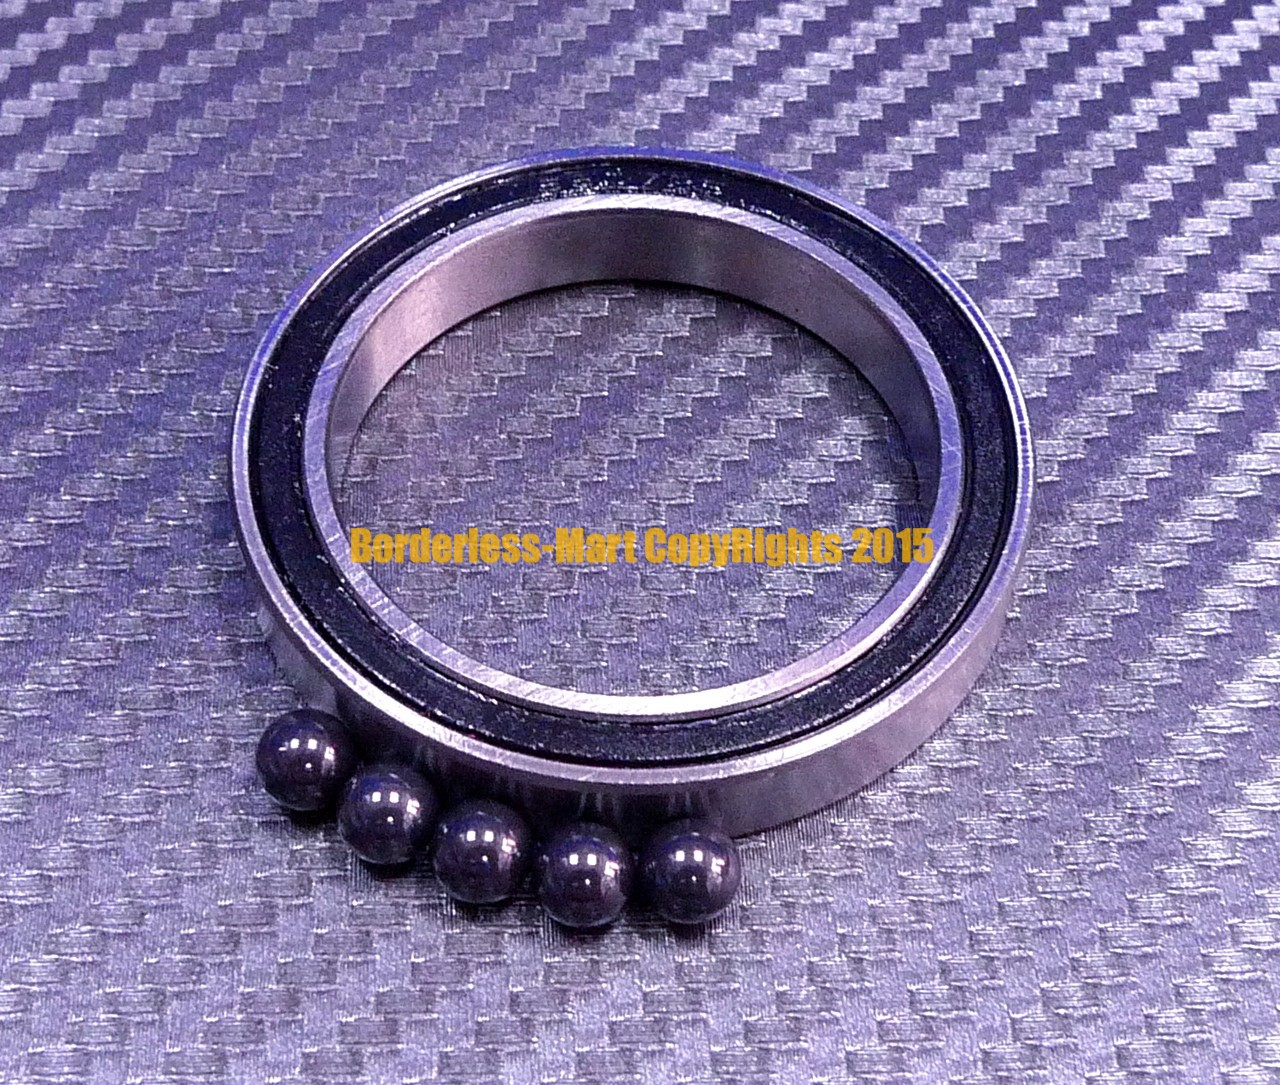 1 PC Si3N4 Ball Bearings 6703RS 6703 Hybrid Ceramic Bearing 17*23*4 mm ABEC-1